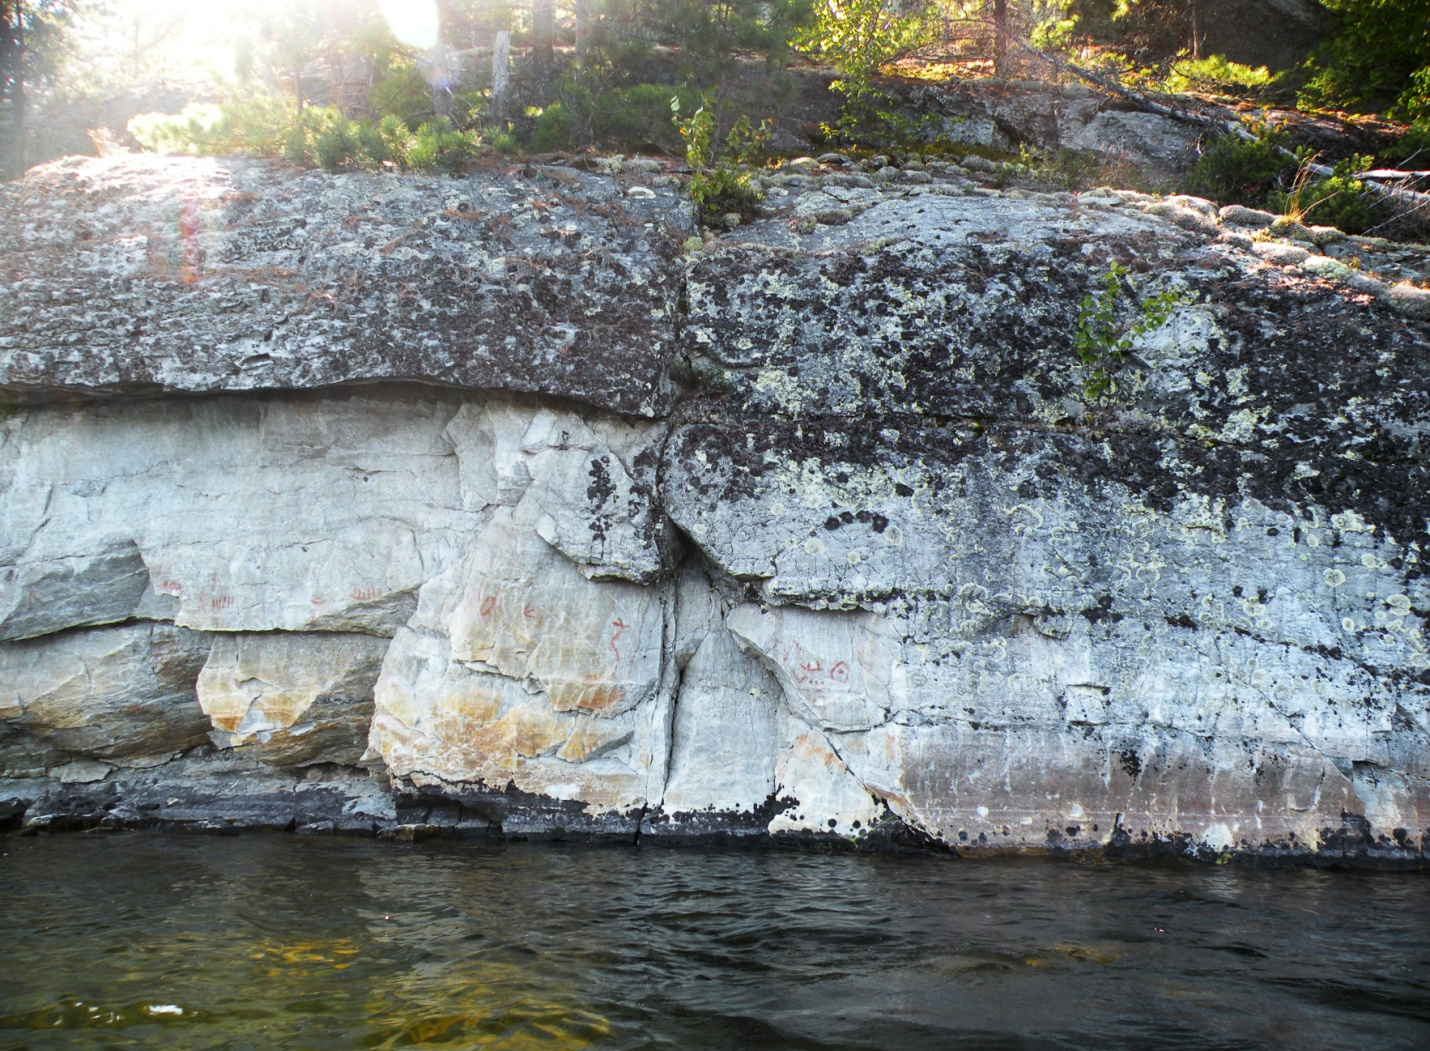 Picture of the Diamond Lake site, in Ontario, Canada. A horned snake, canoes and a bird track are painted on a rock outcrop.